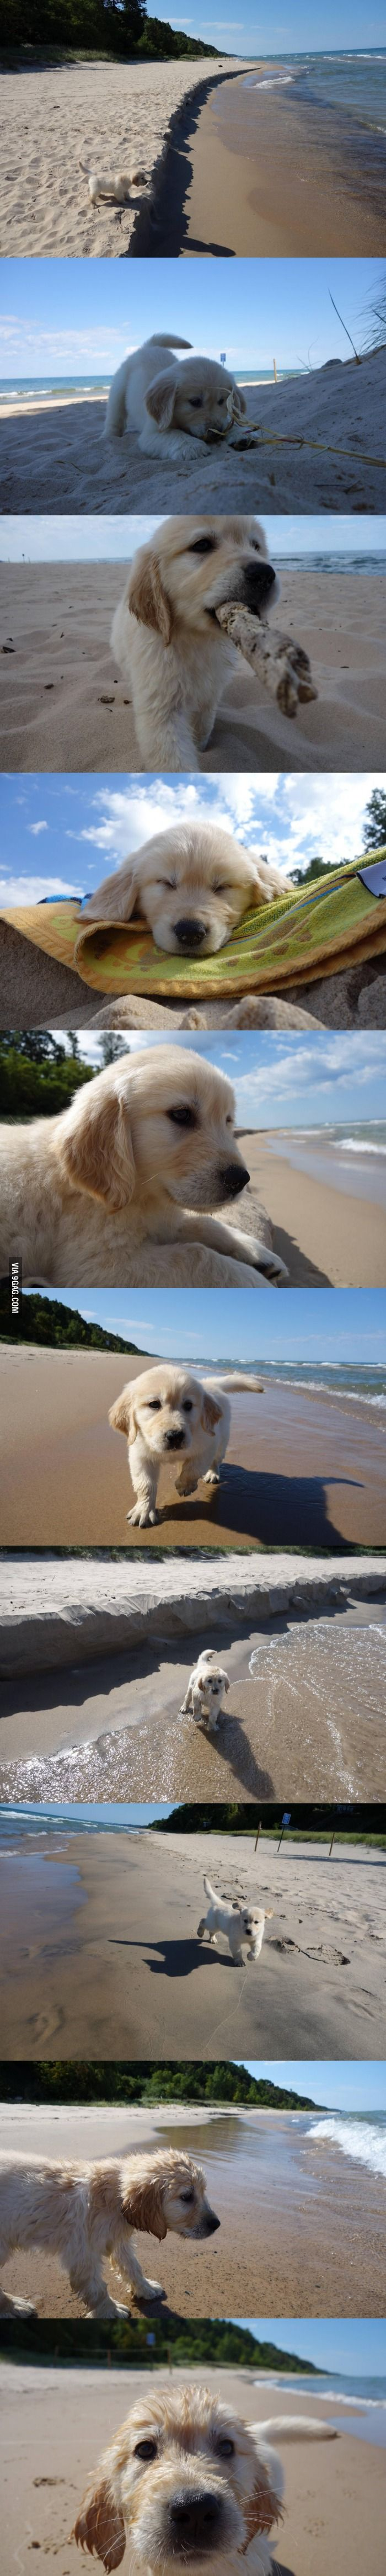 Puppy's first time at the beach